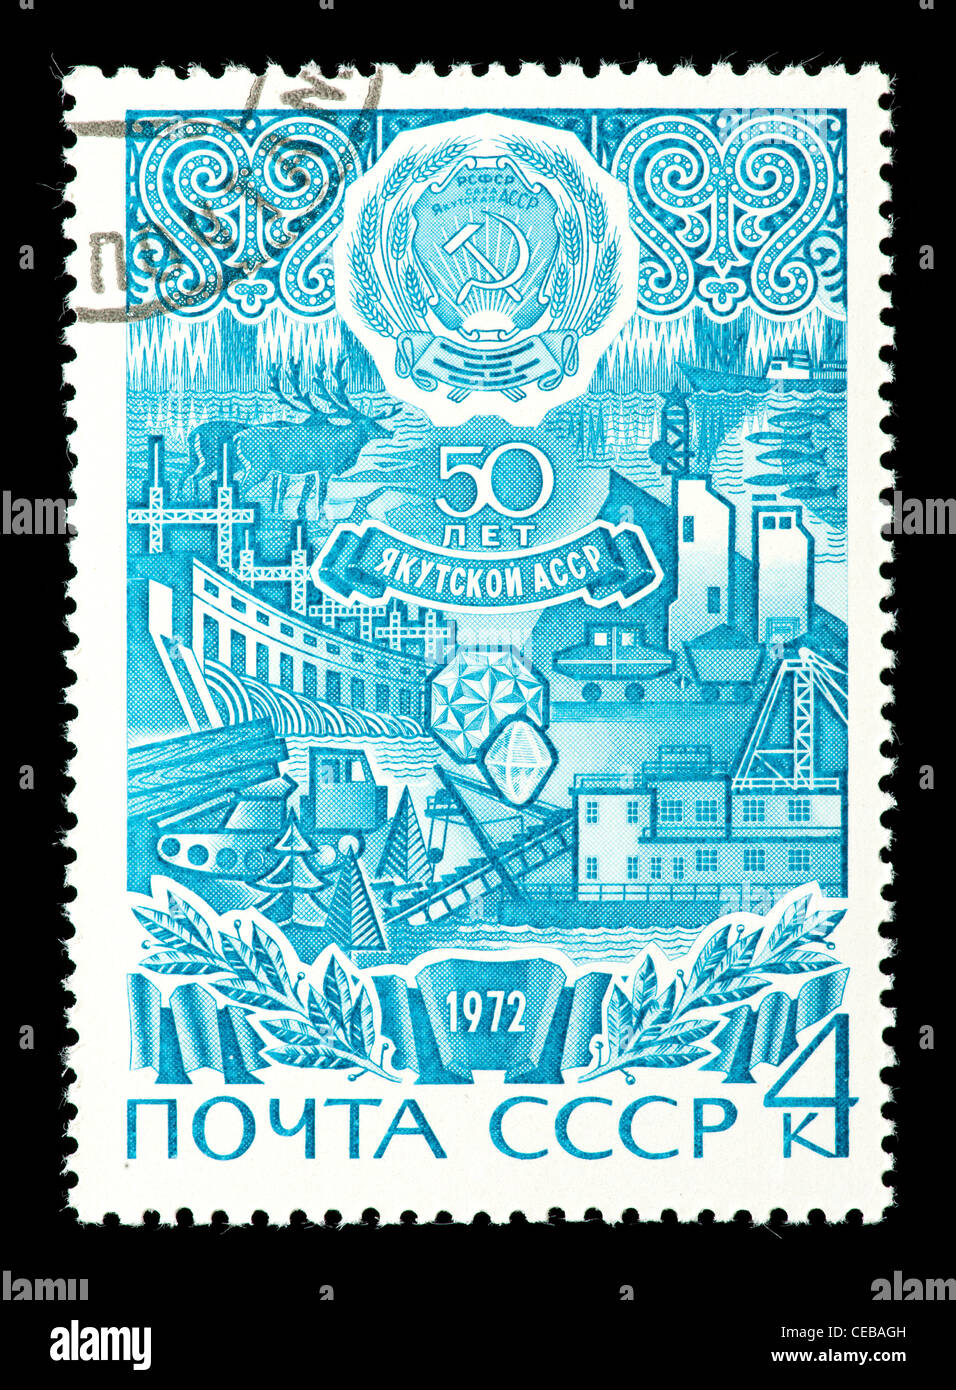 Postage stamp from the Soviet Union depicting Soviet industry. - Stock Image